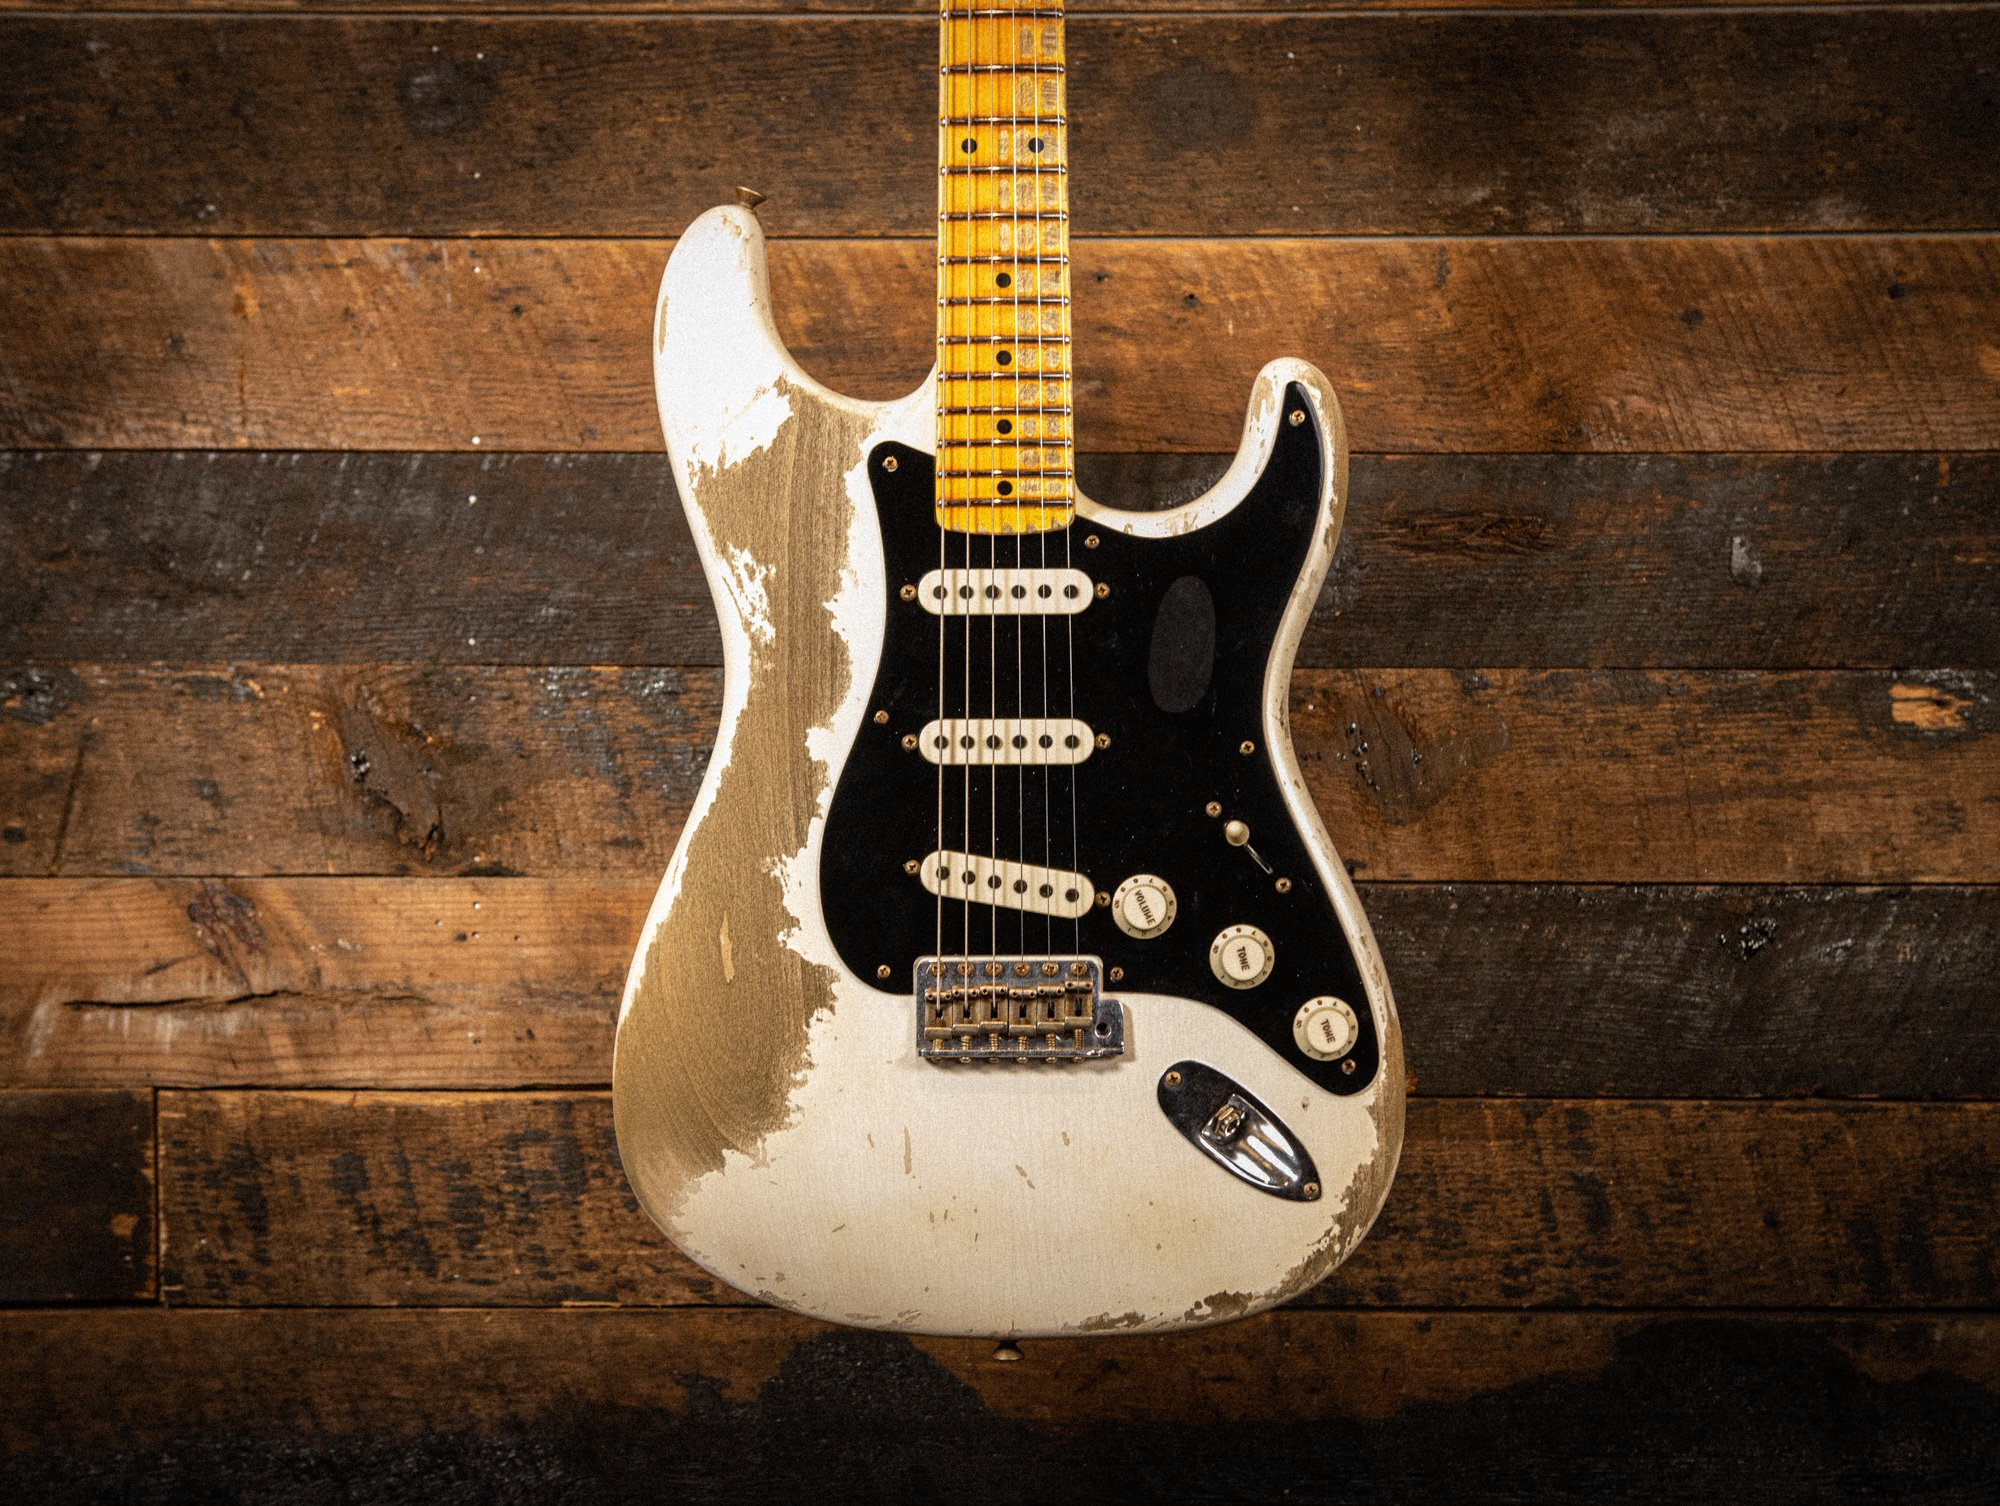 Fender Custom Shop 1956 Poblano Stratocaster in Aged White Blonde